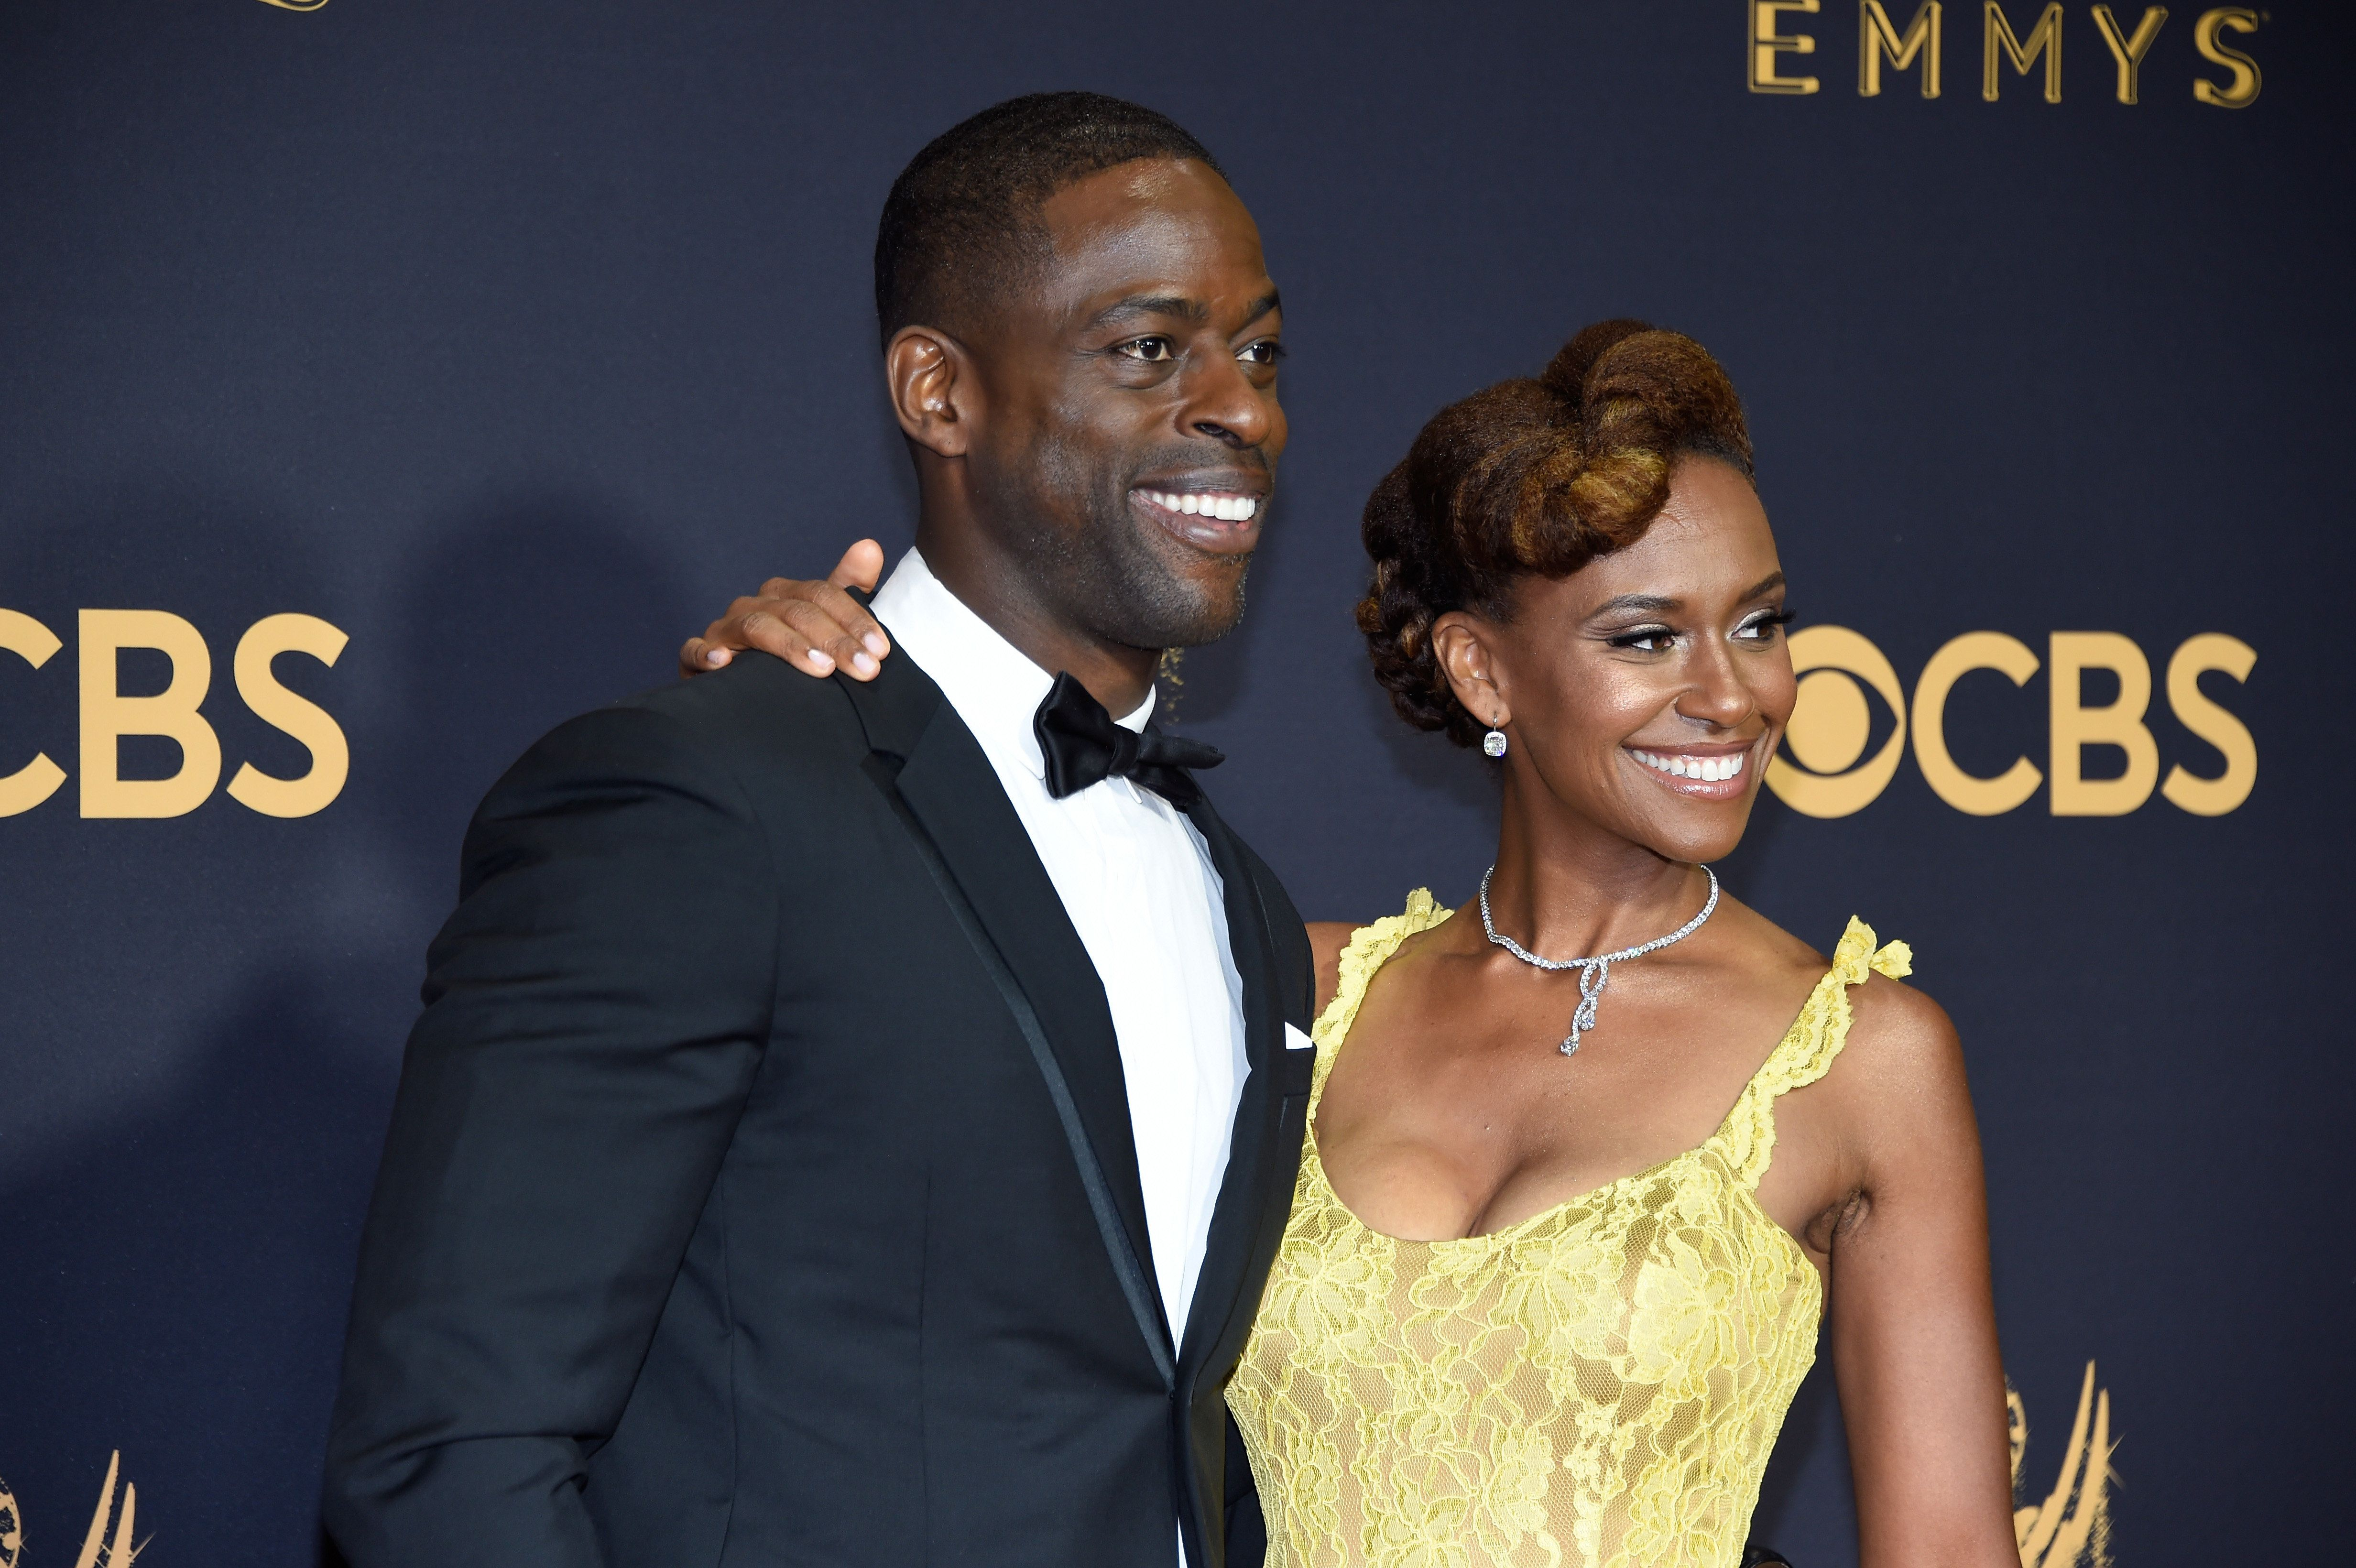 LOS ANGELES, CA - SEPTEMBER 17:  Sterling K. Brown and Ryan Michelle Bathe attend the 69th Annual Primetime Emmy Awards at Microsoft Theater on September 17, 2017 in Los Angeles, California.  (Photo by Kevin Mazur/WireImage)